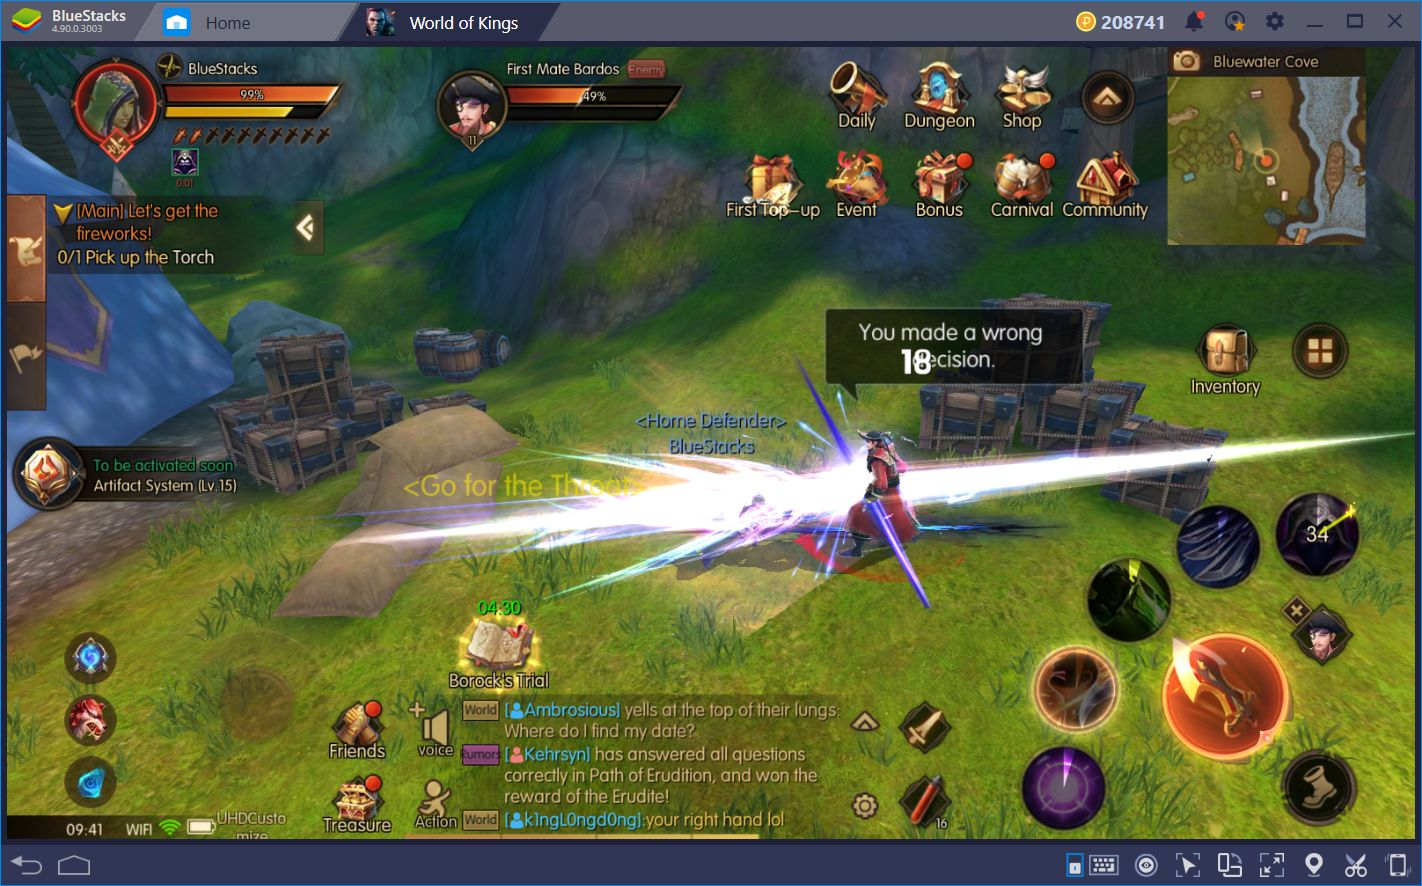 Running Tough Content in World of Kings